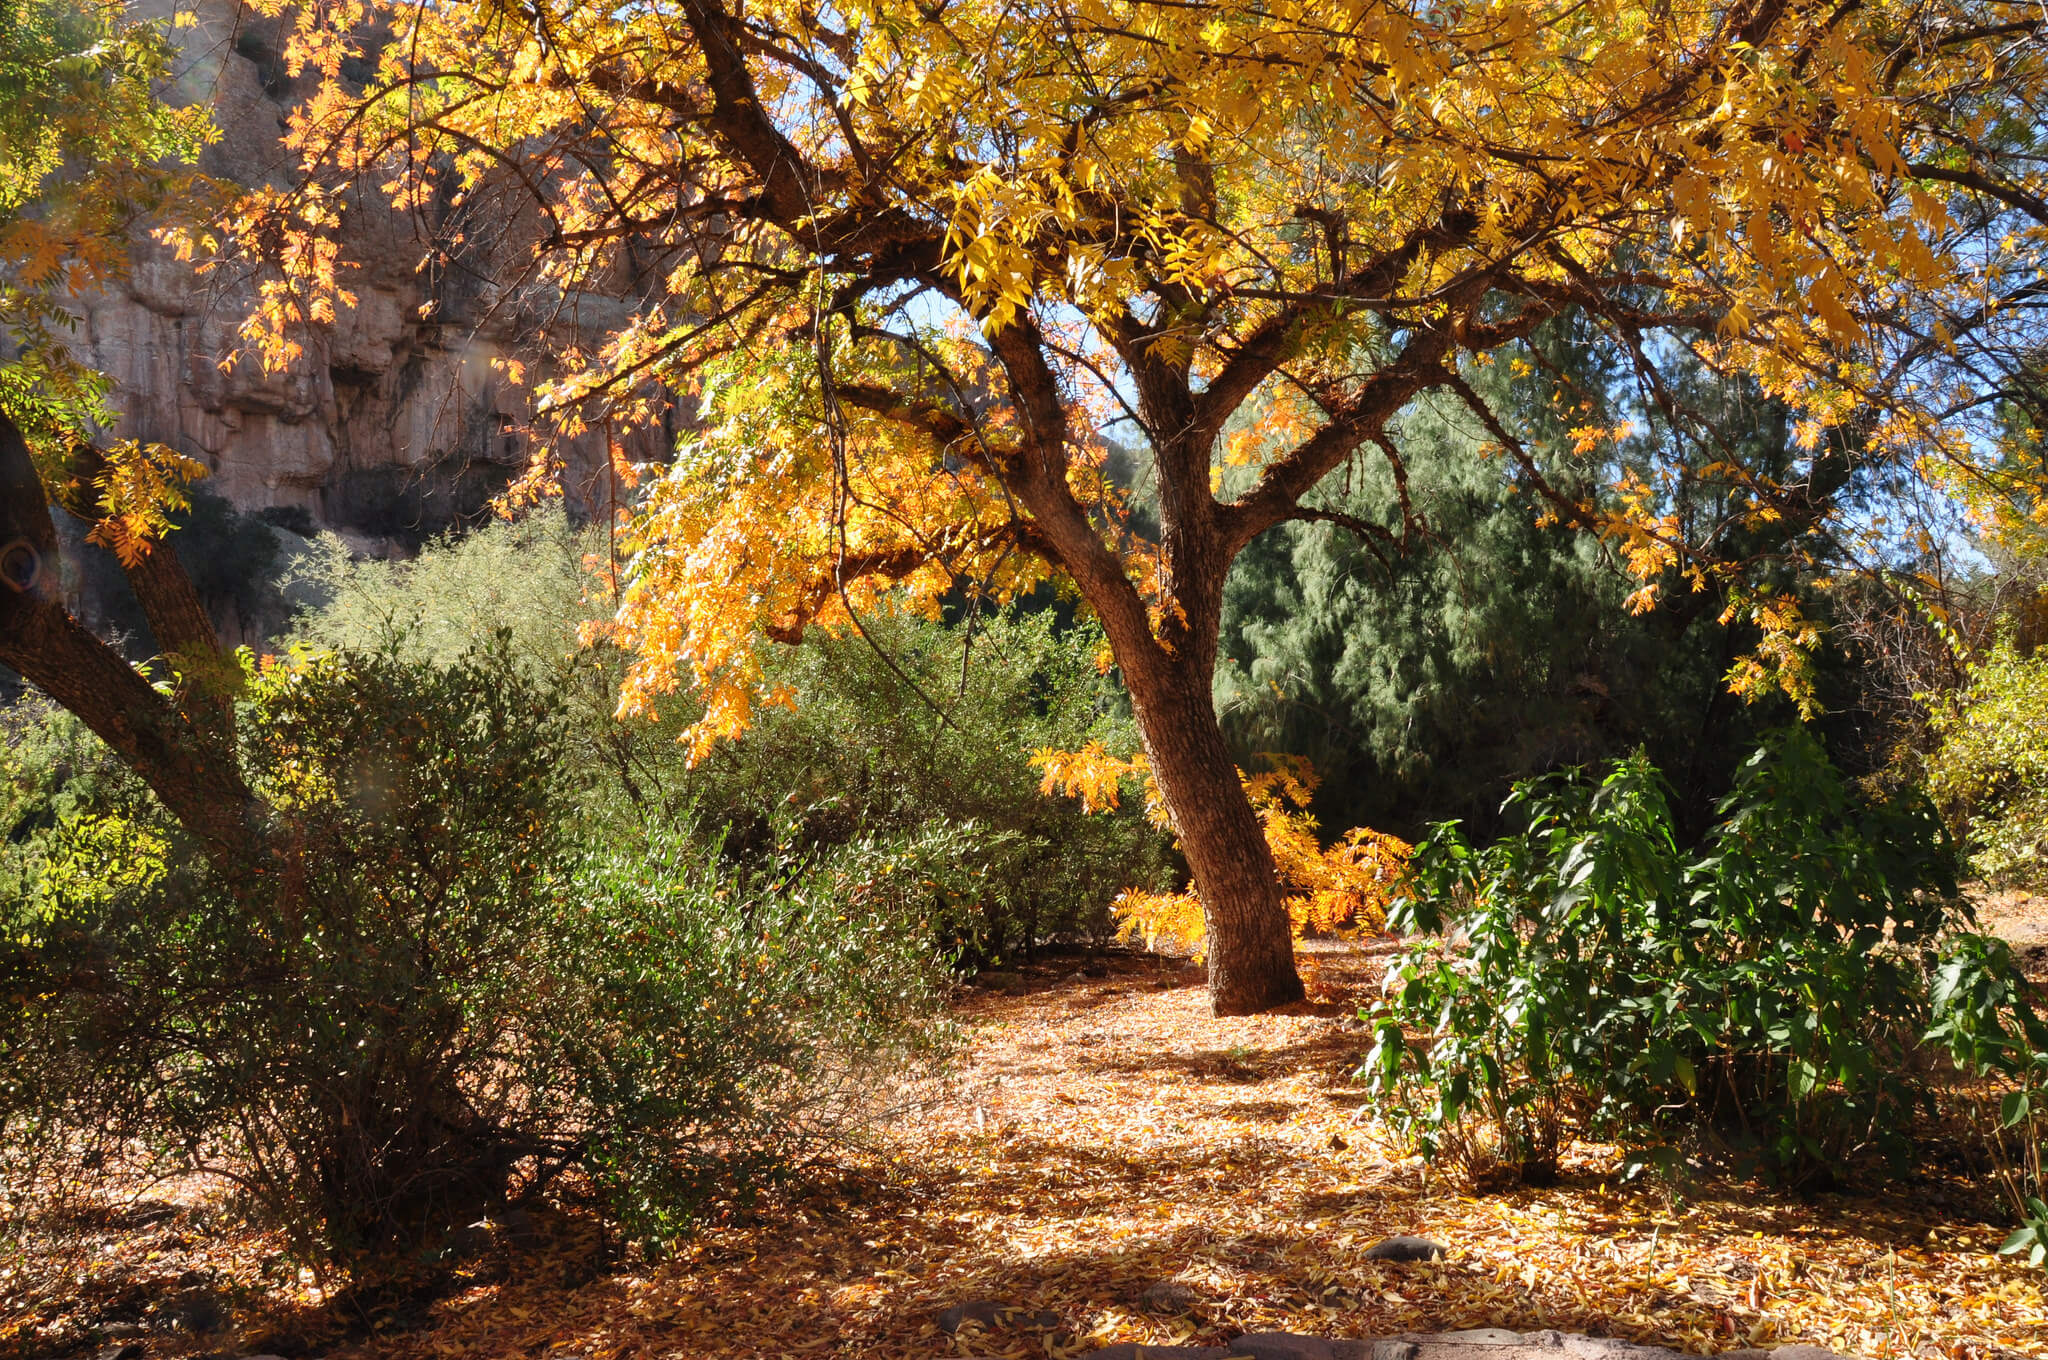 8 Facts About Boyce Thompson Arboretum State Park